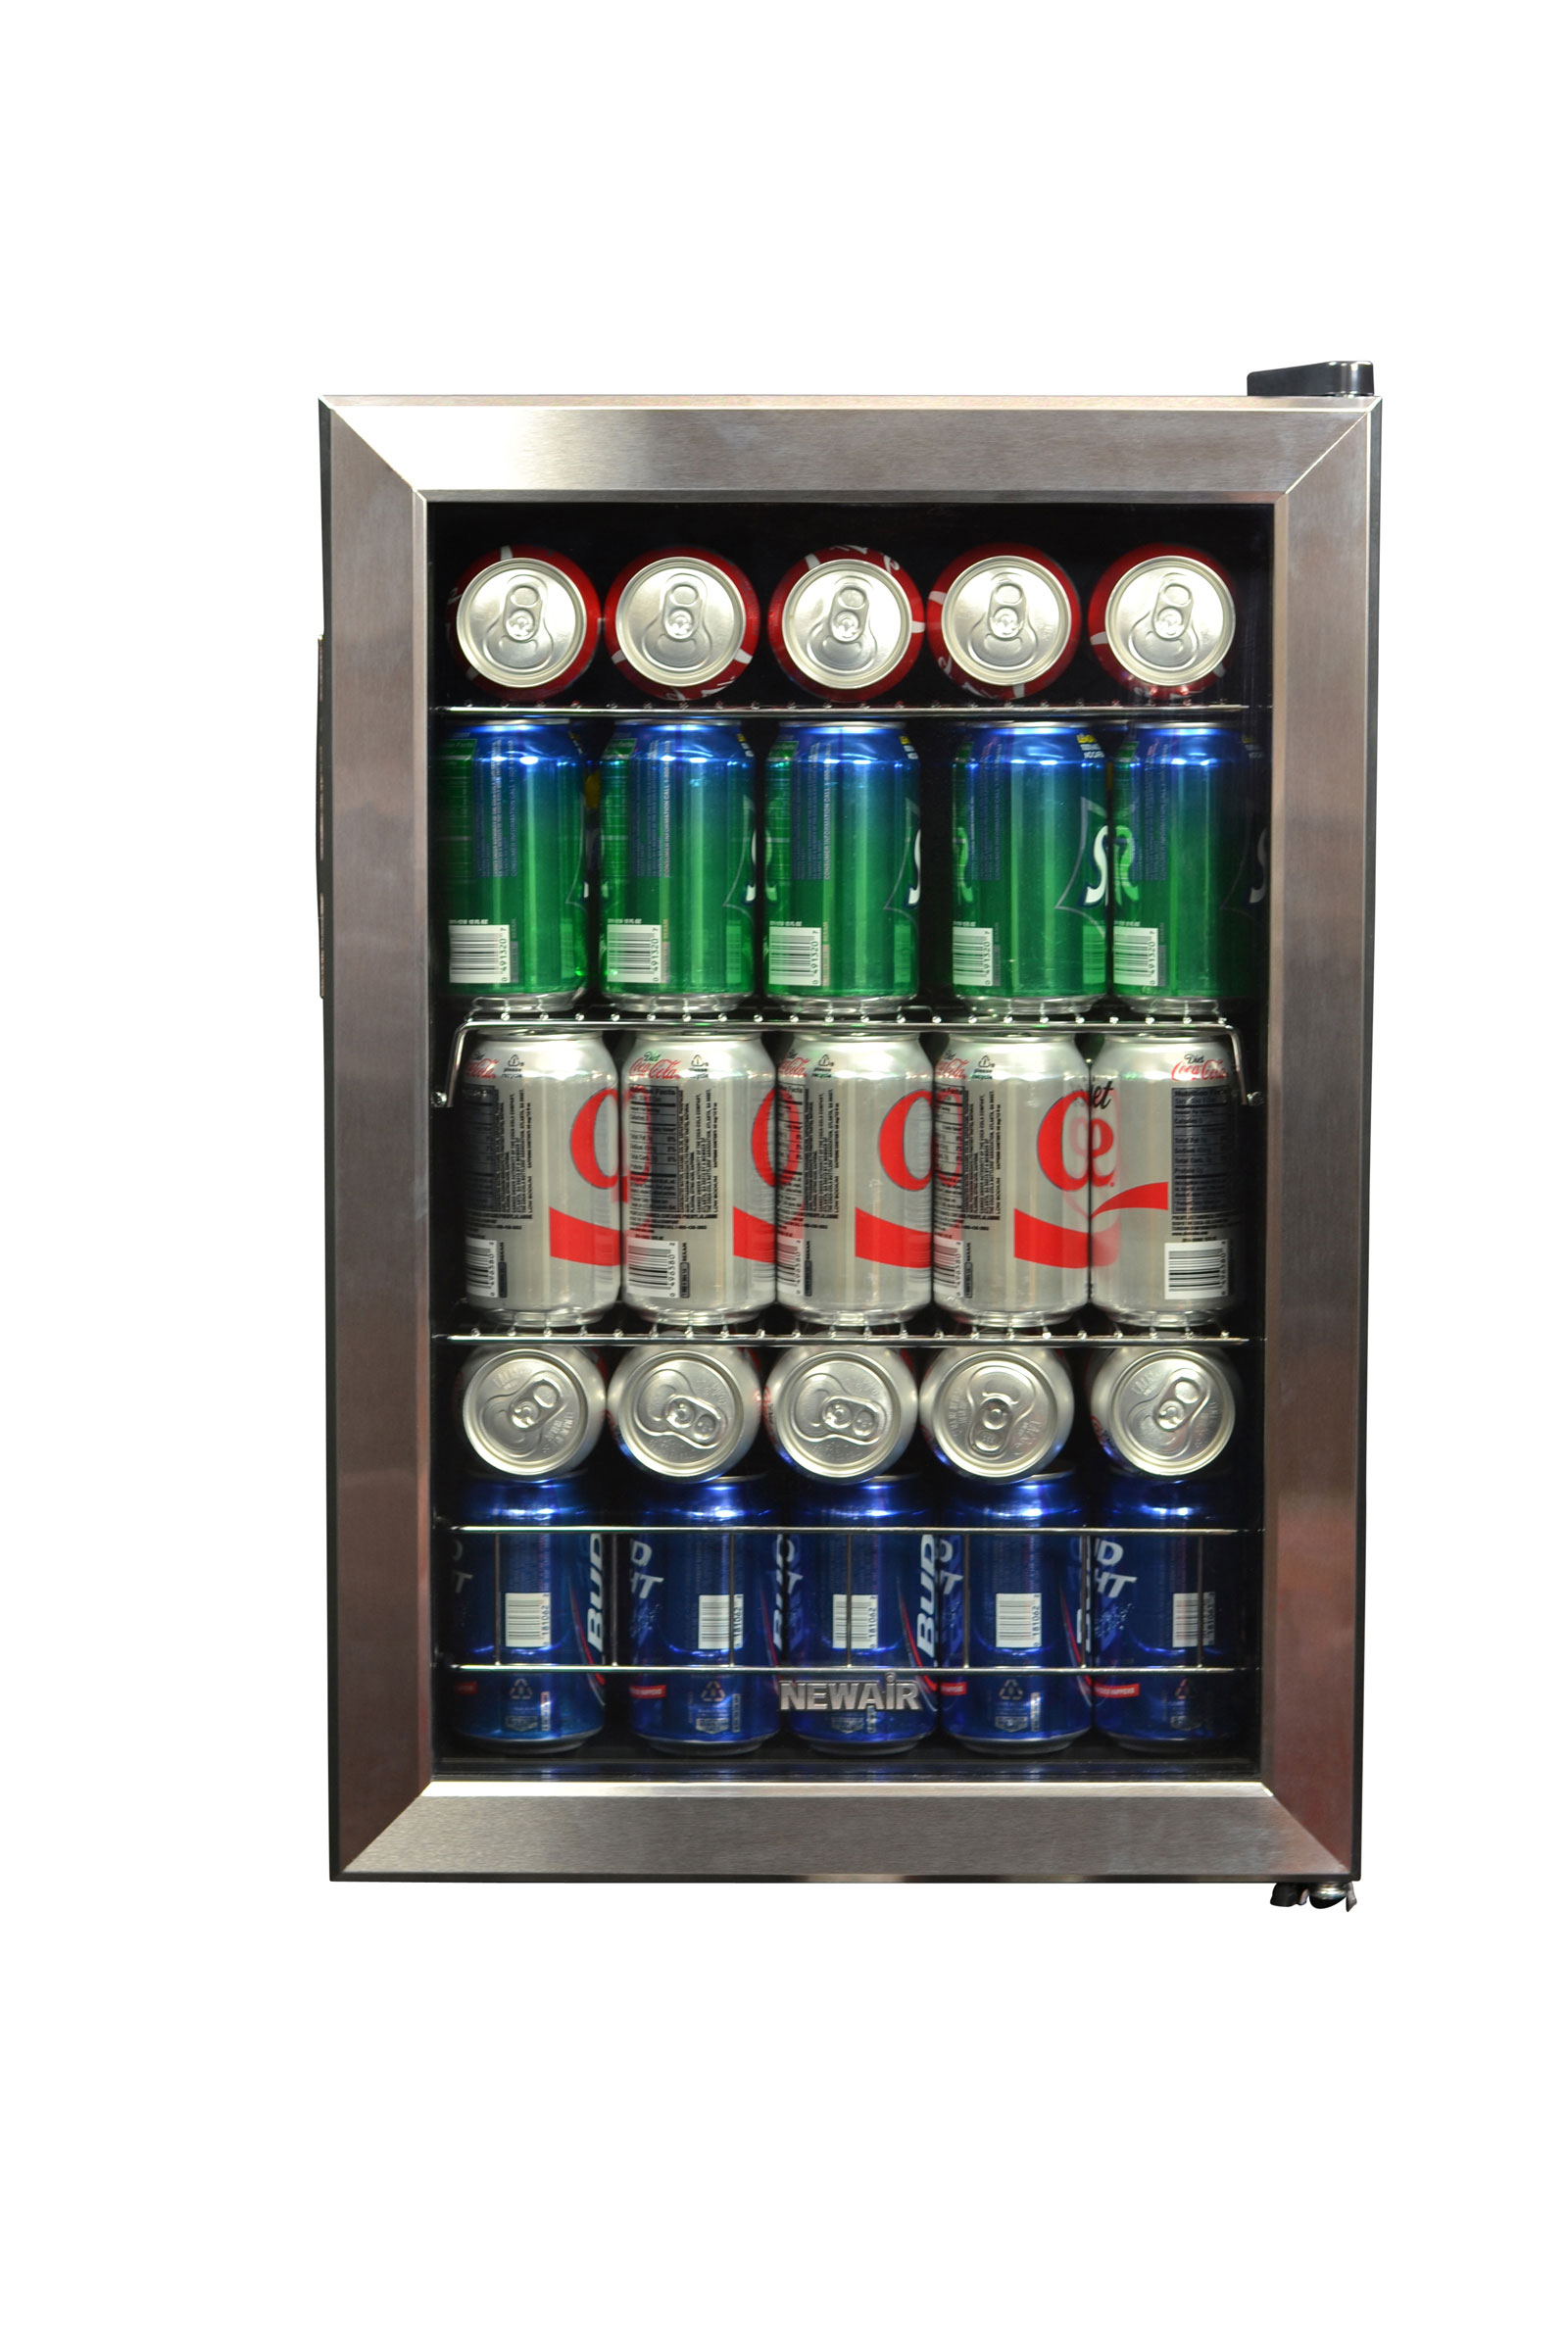 NewAir AB-850 84 Can Beverage Cooler